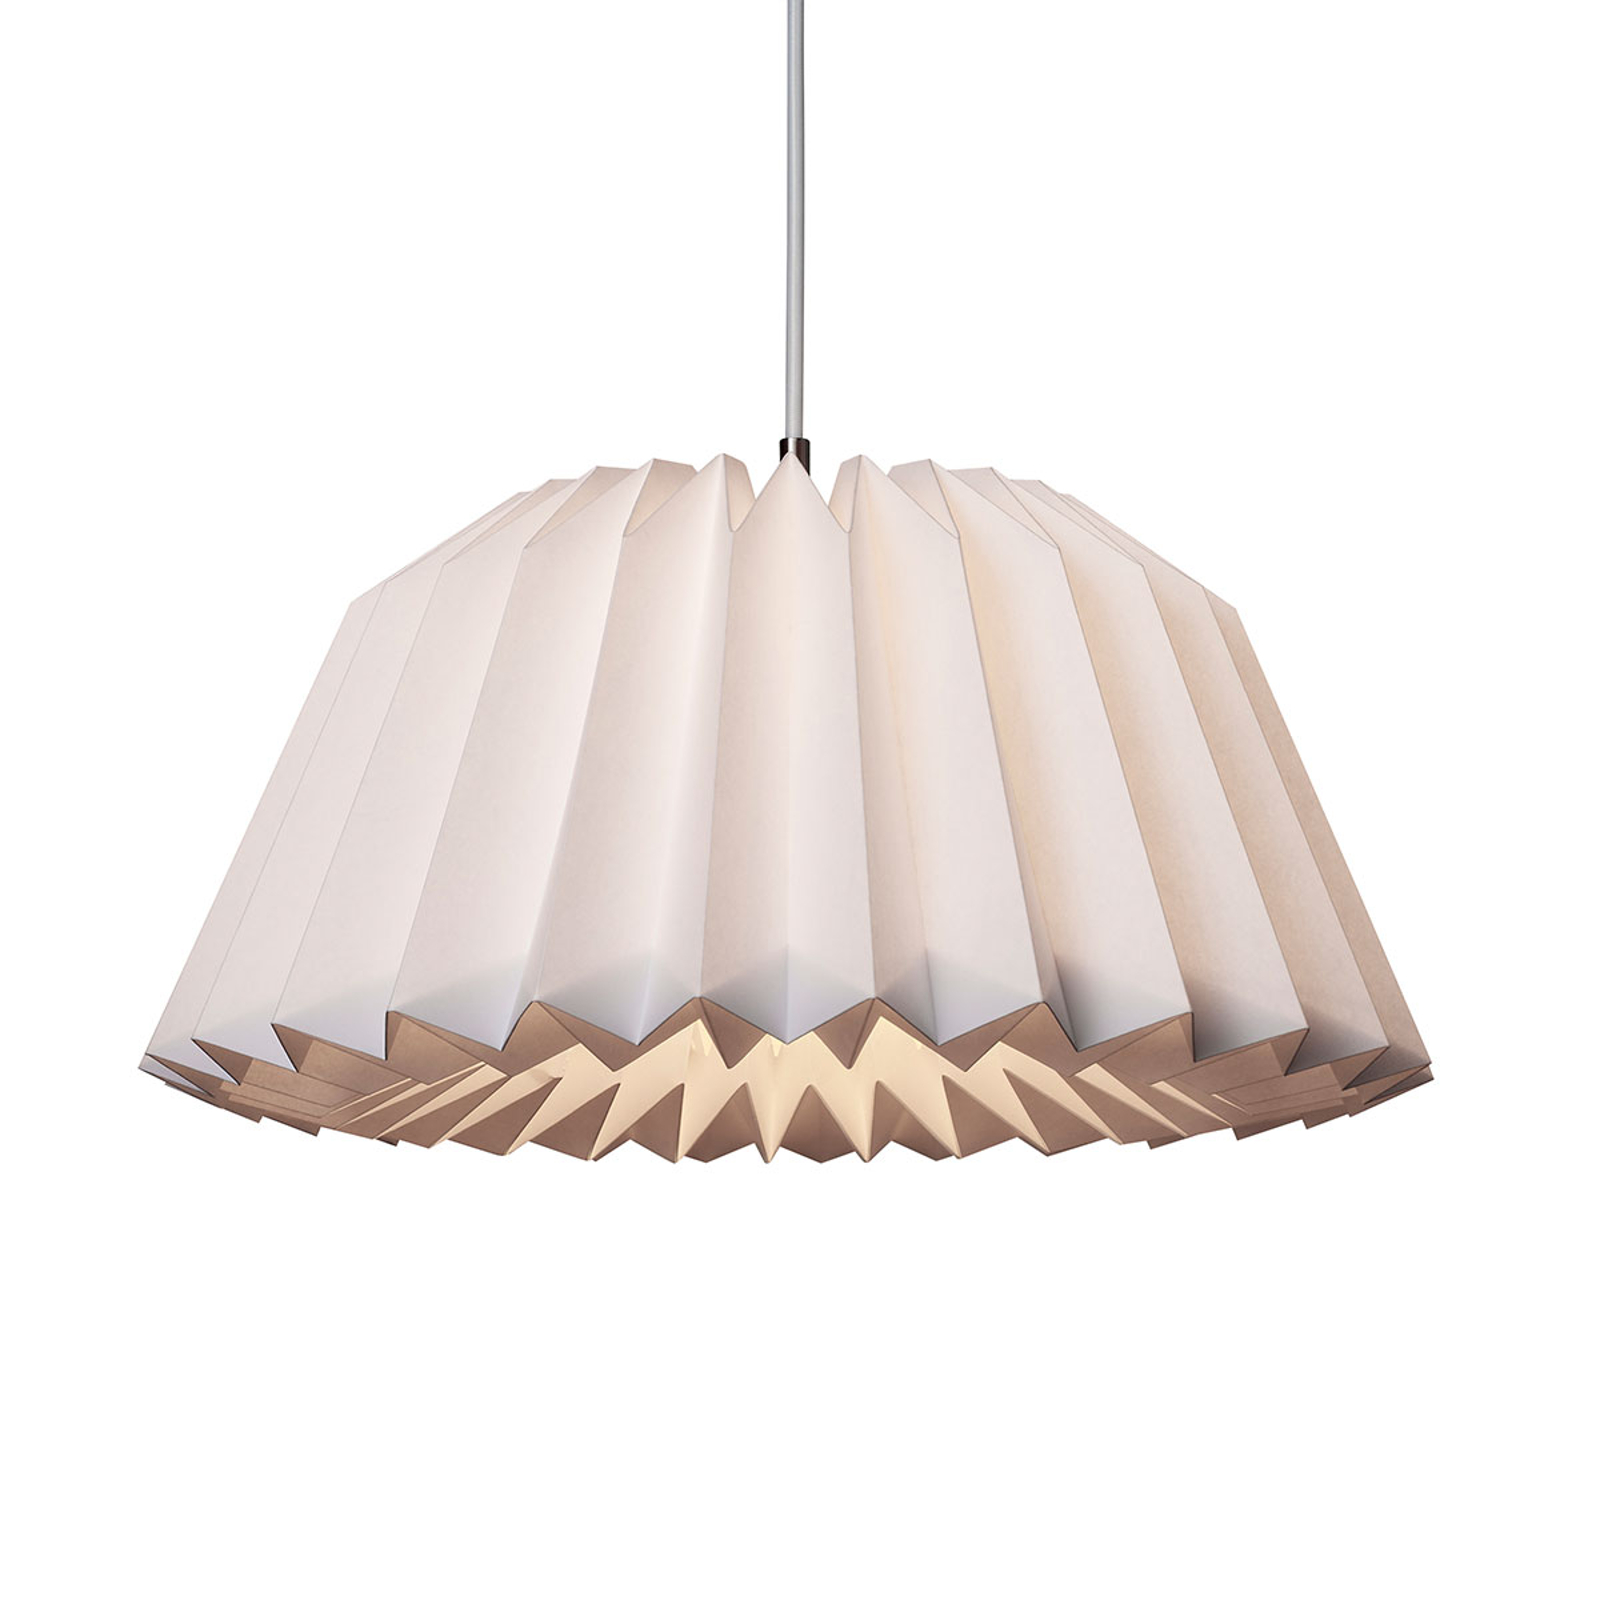 LE KLINT Megatwo hanglamp in wit, medium